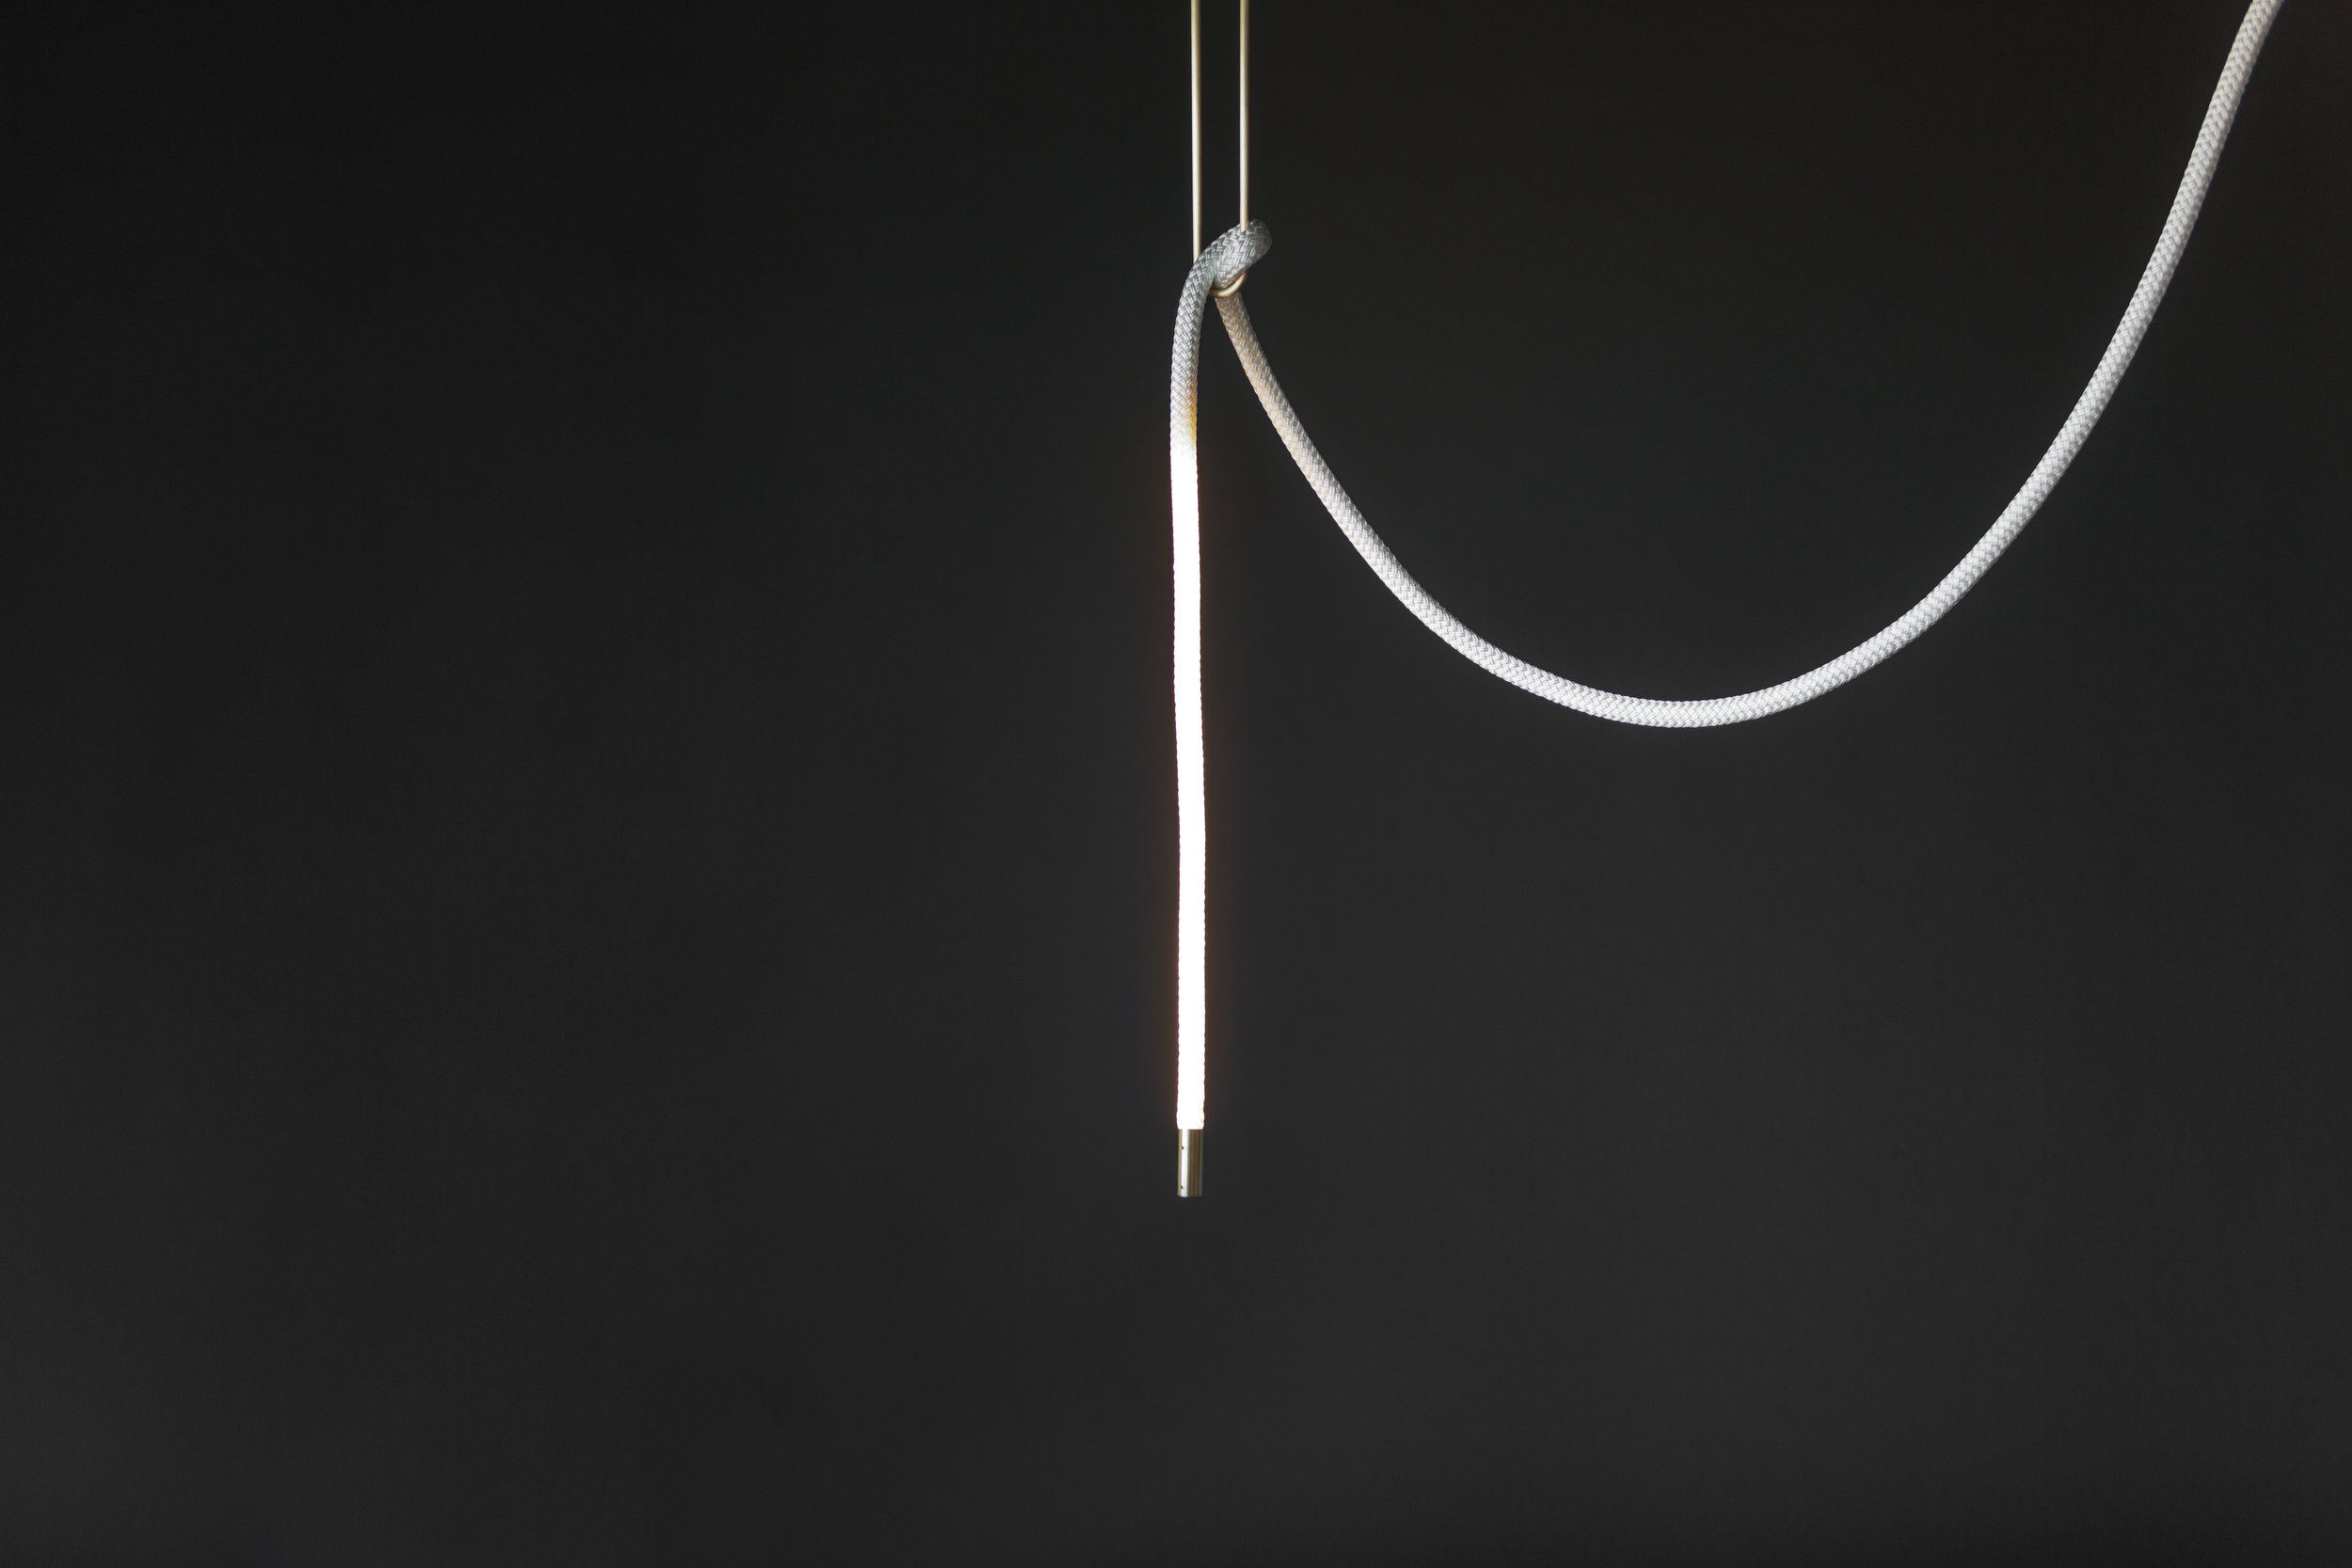 As pictured: 2 Foot Lit Length in Satin Brass